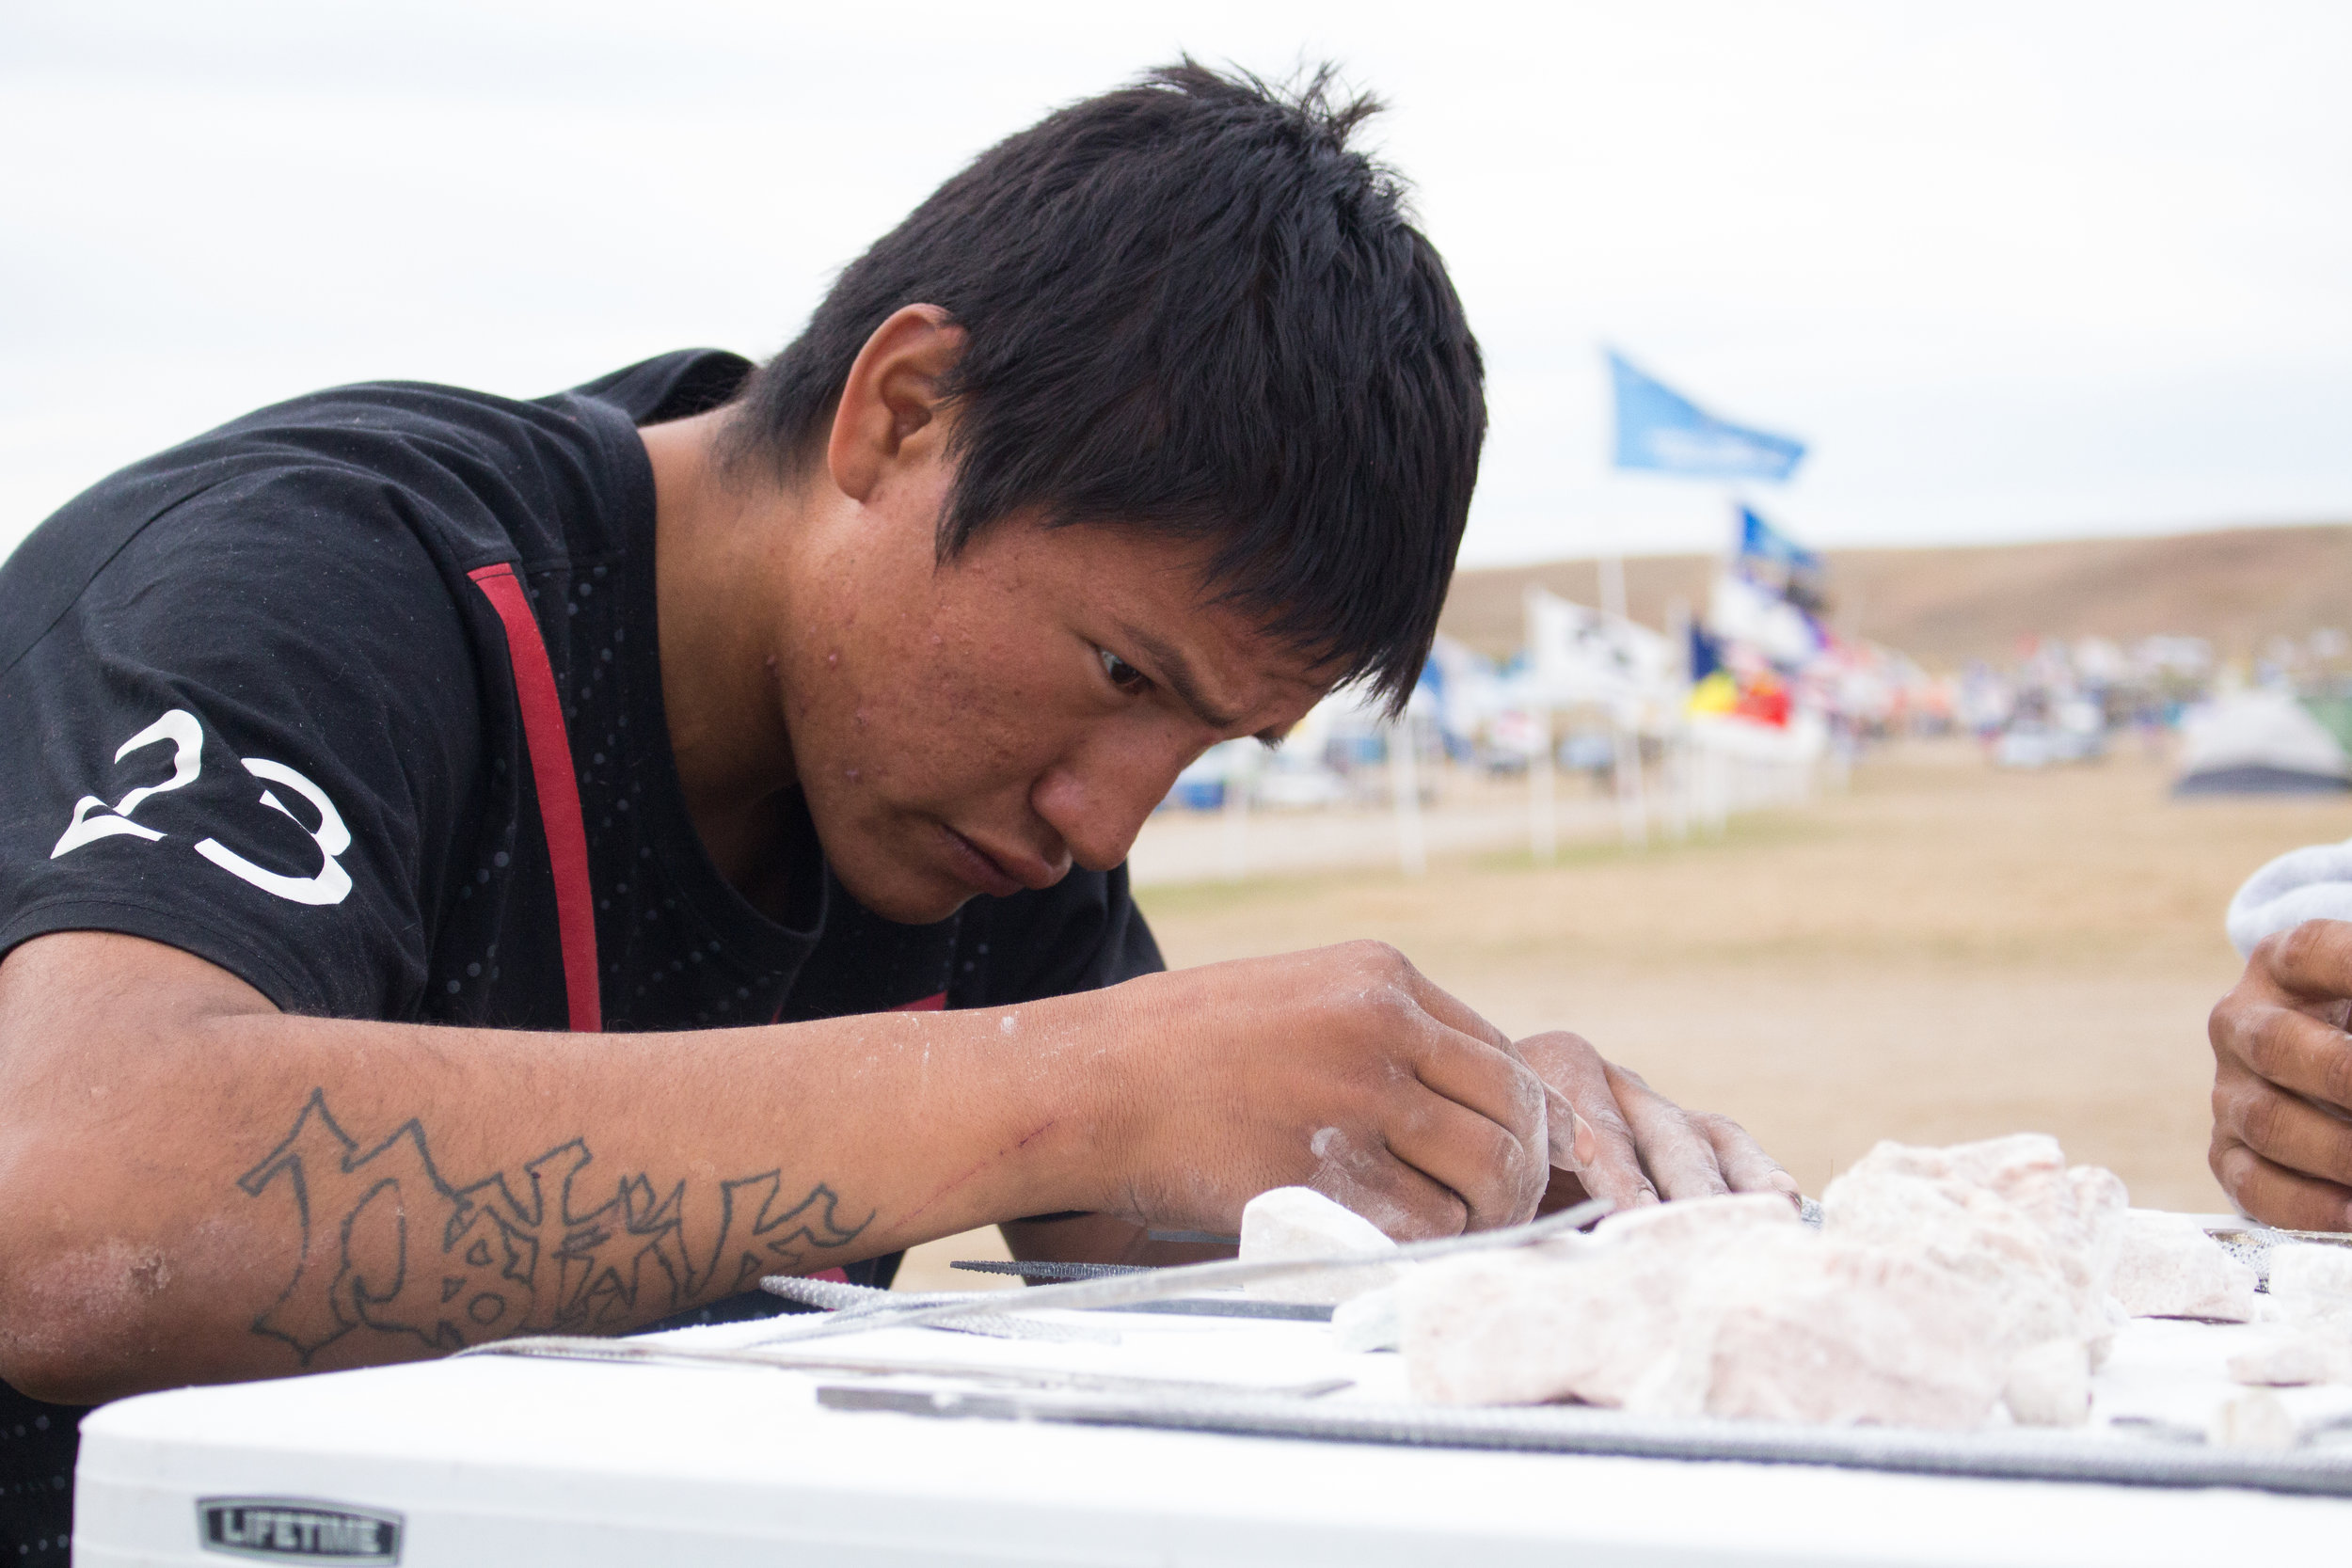 Carving at Standing Rock